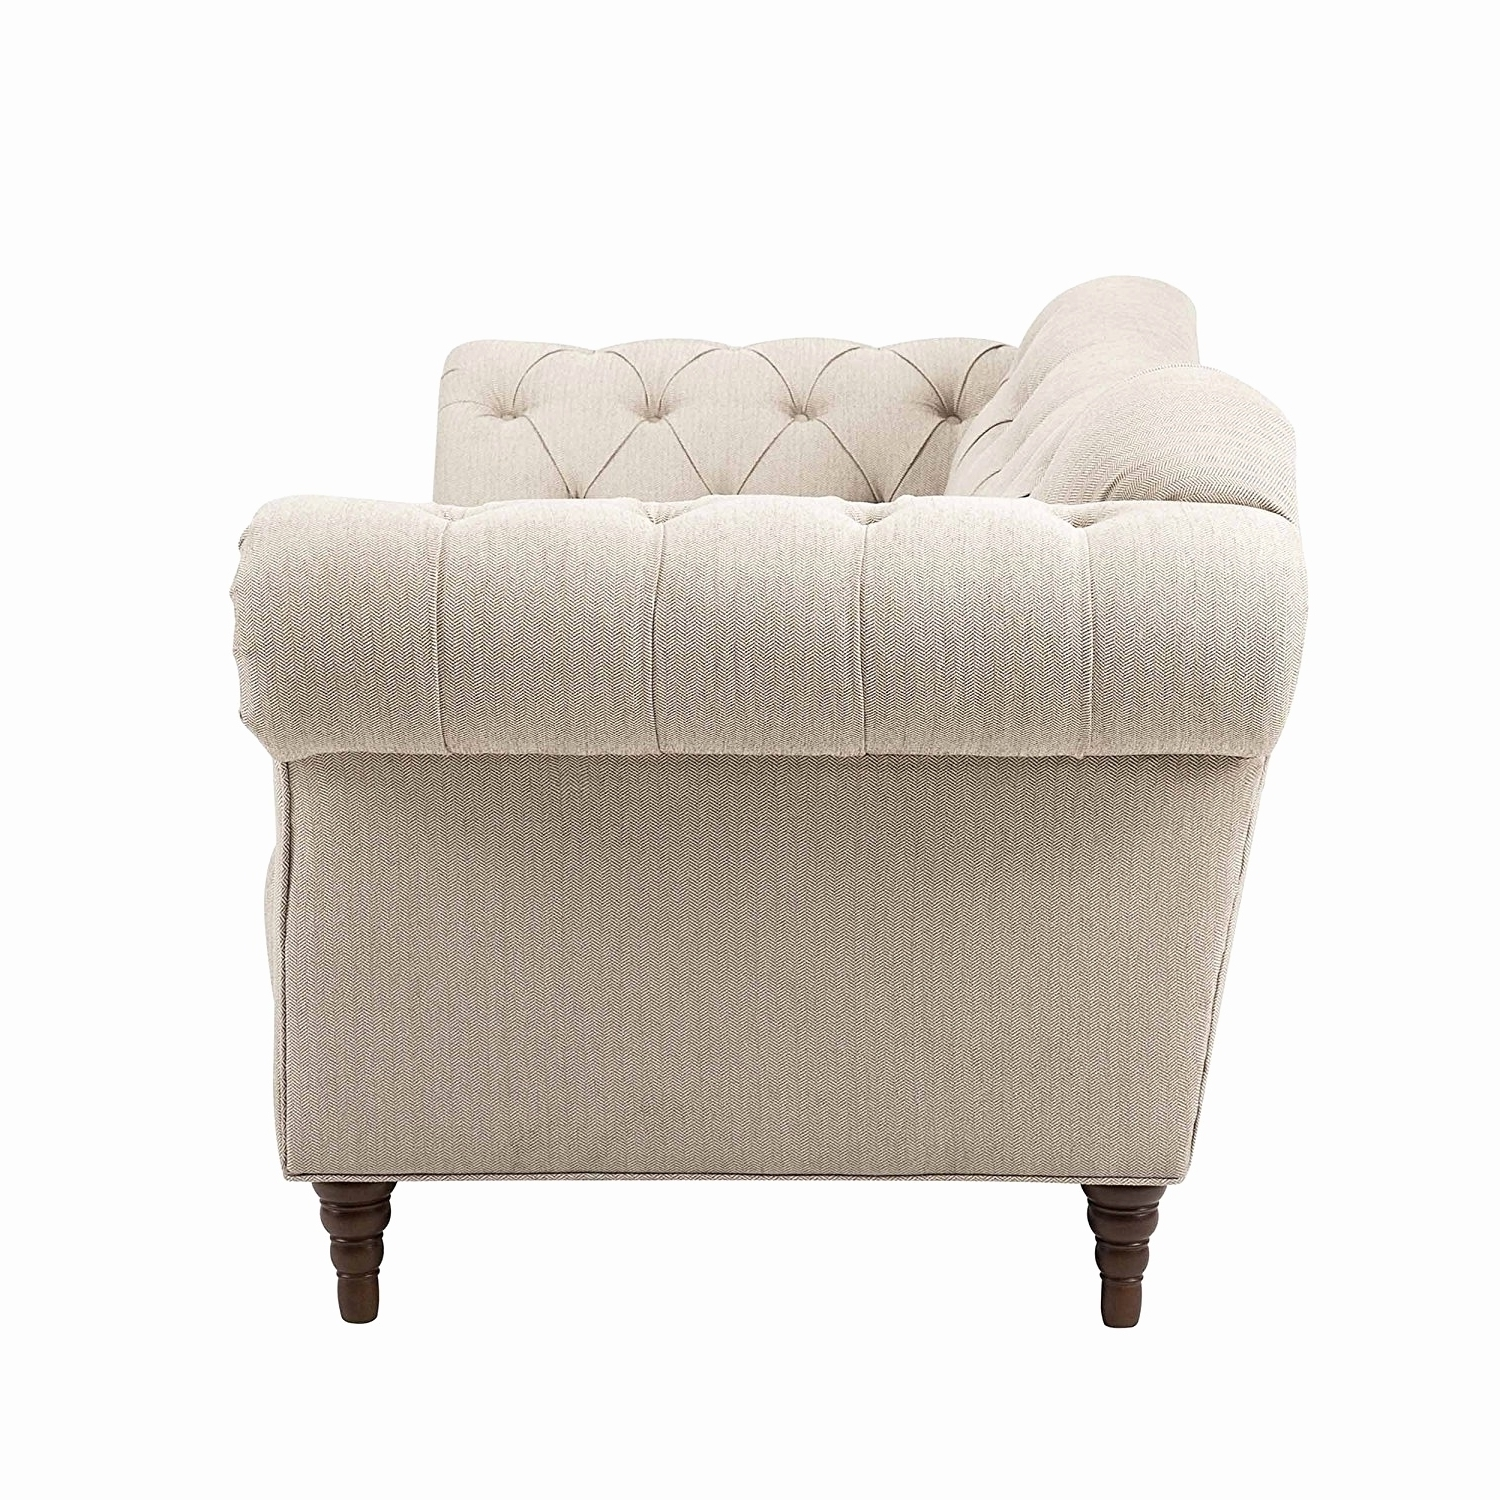 2018 Chintz Fabric Sofas Inside Armchair : Chintz Fabric Sofas Calico Meaning In Hindi What Is (View 13 of 20)